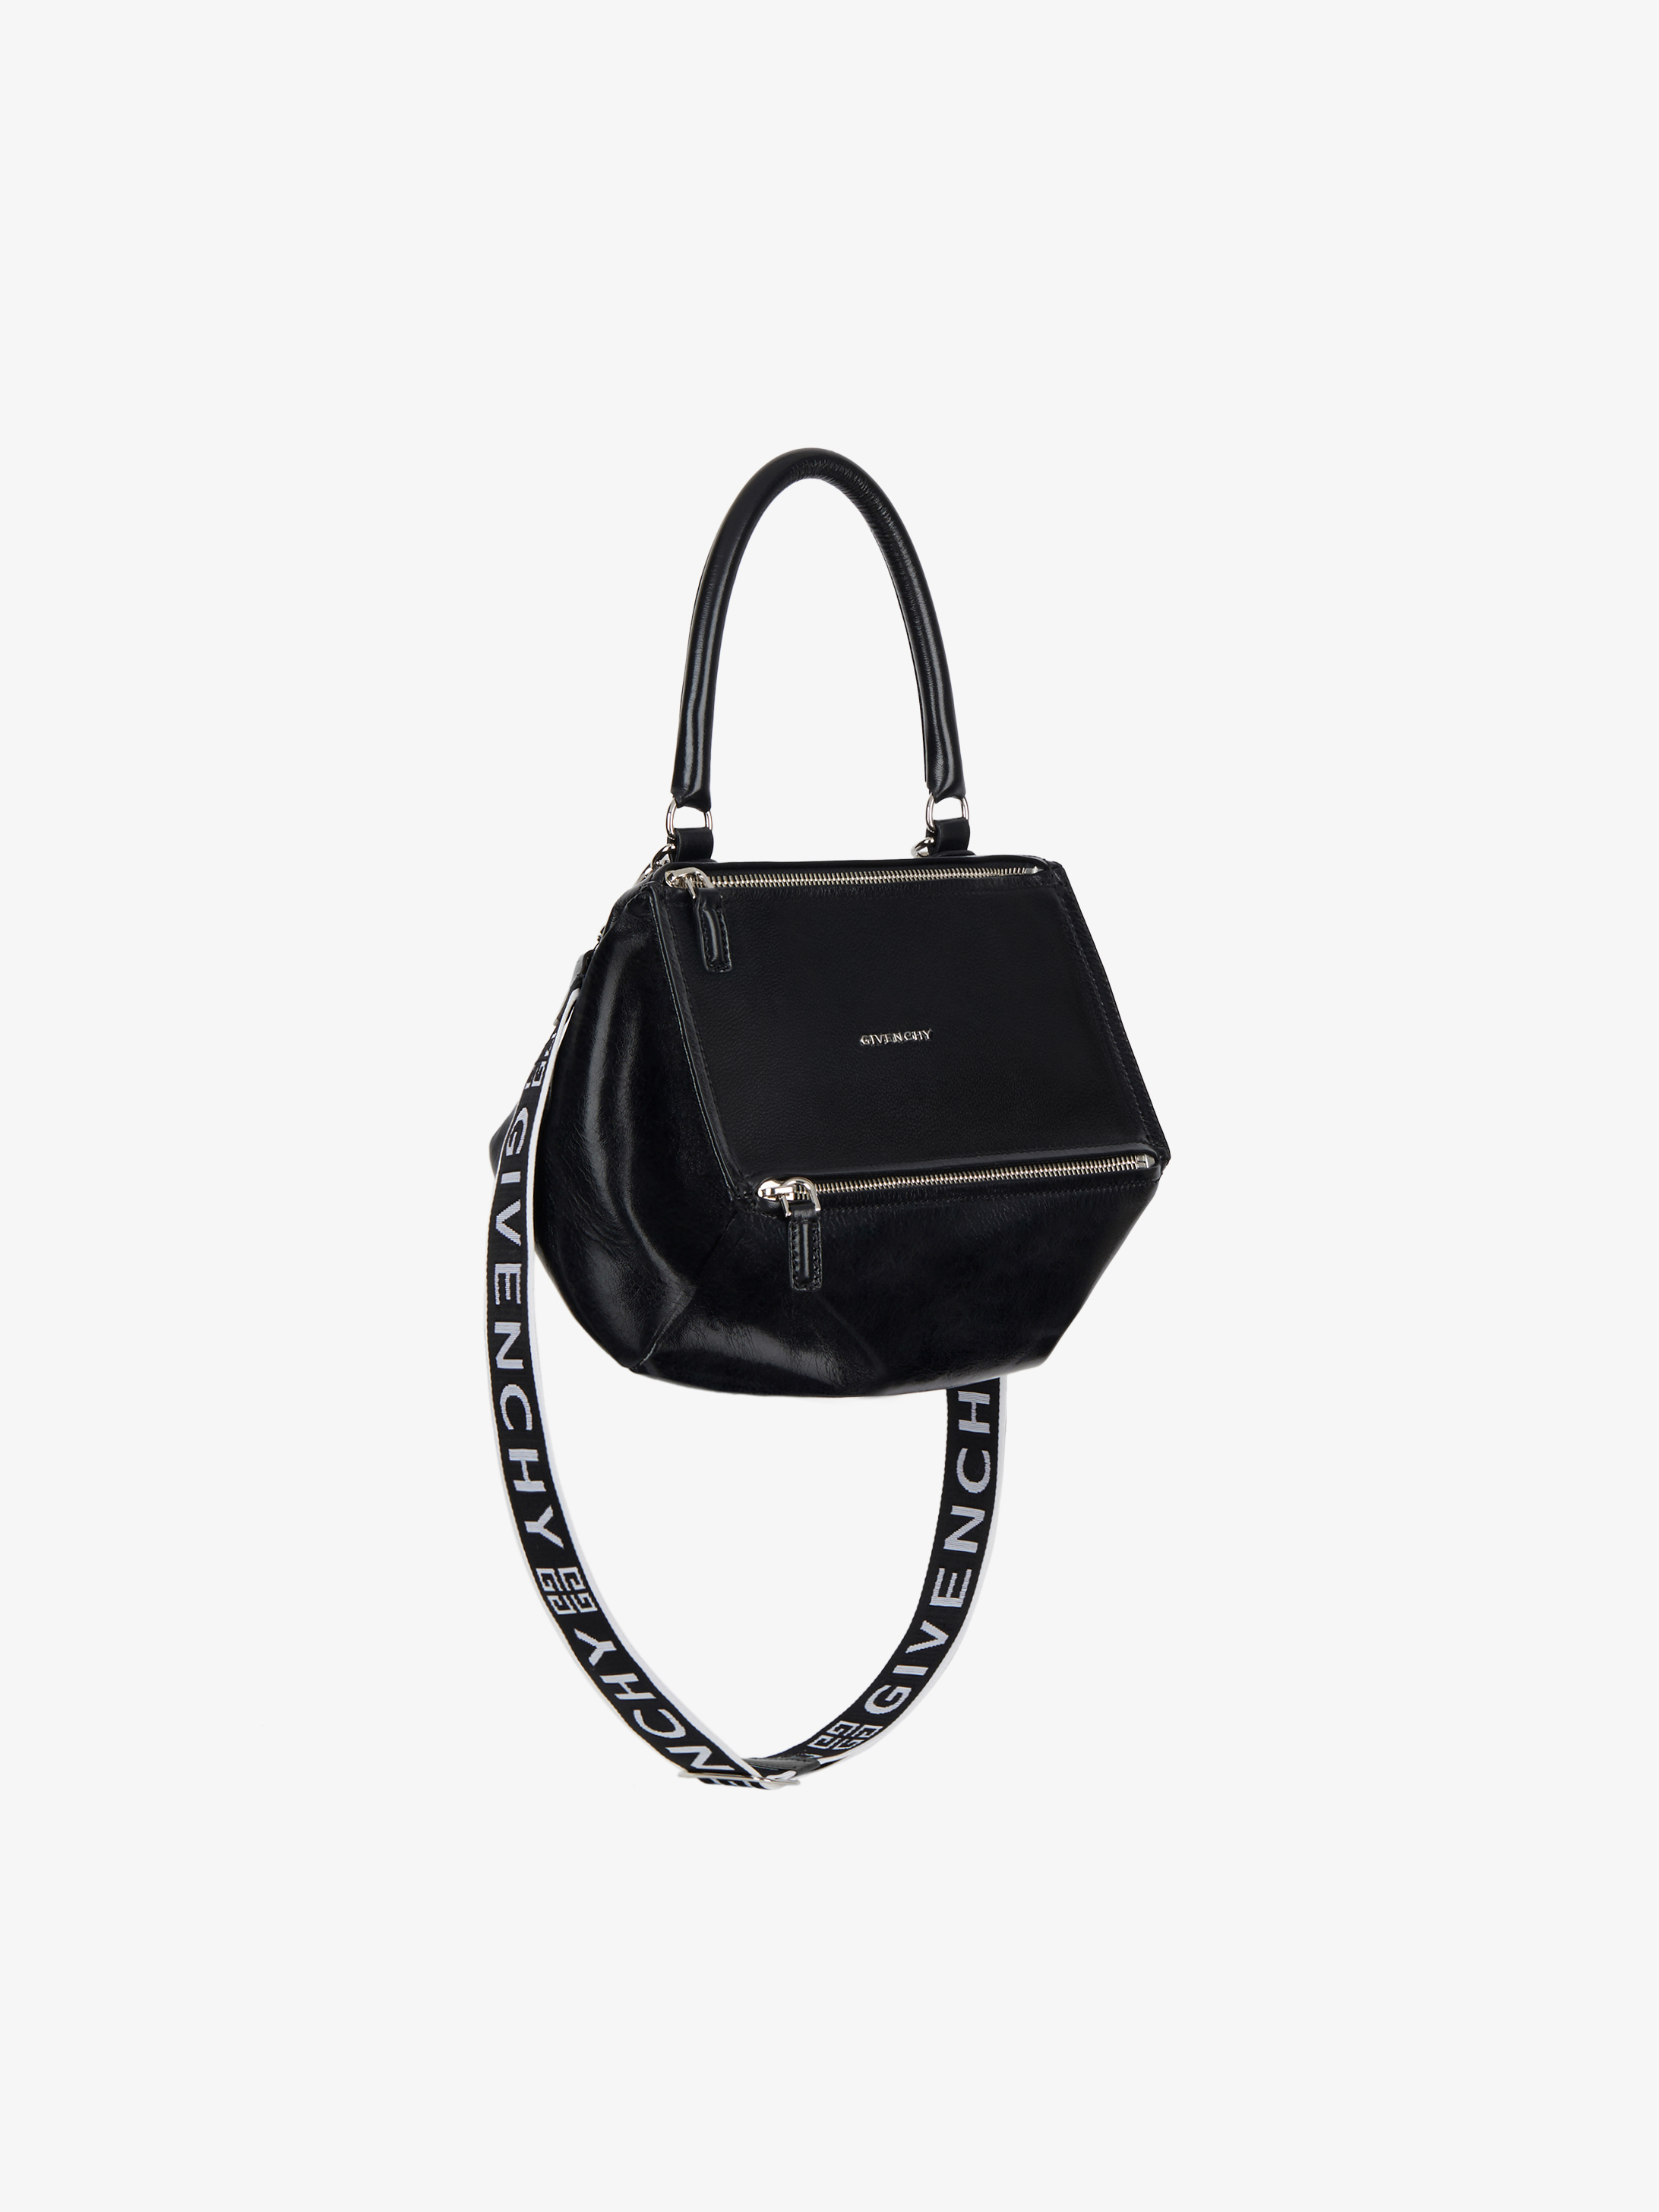 Small pandora bag in patent leather with 4G strap